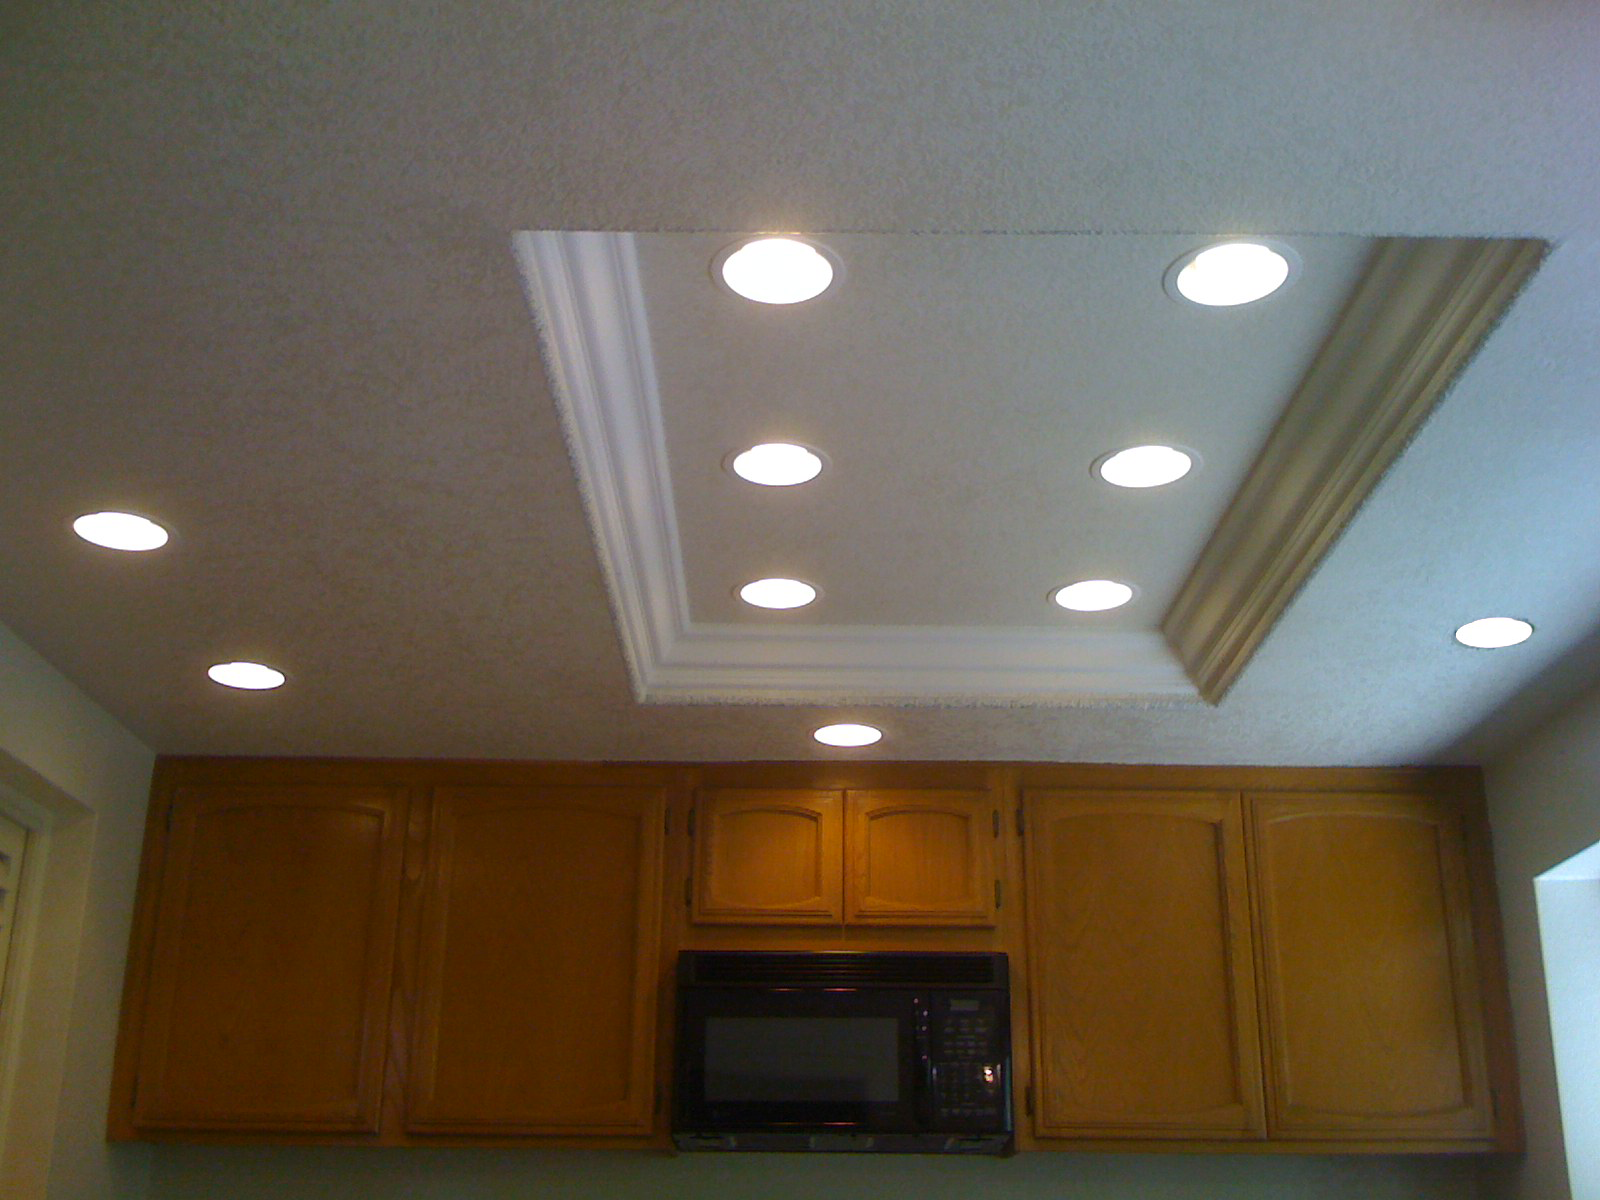 Good Idea For Replacing Fluorescent Light With Recessed Lighting In A Low Kitchen Ceiling